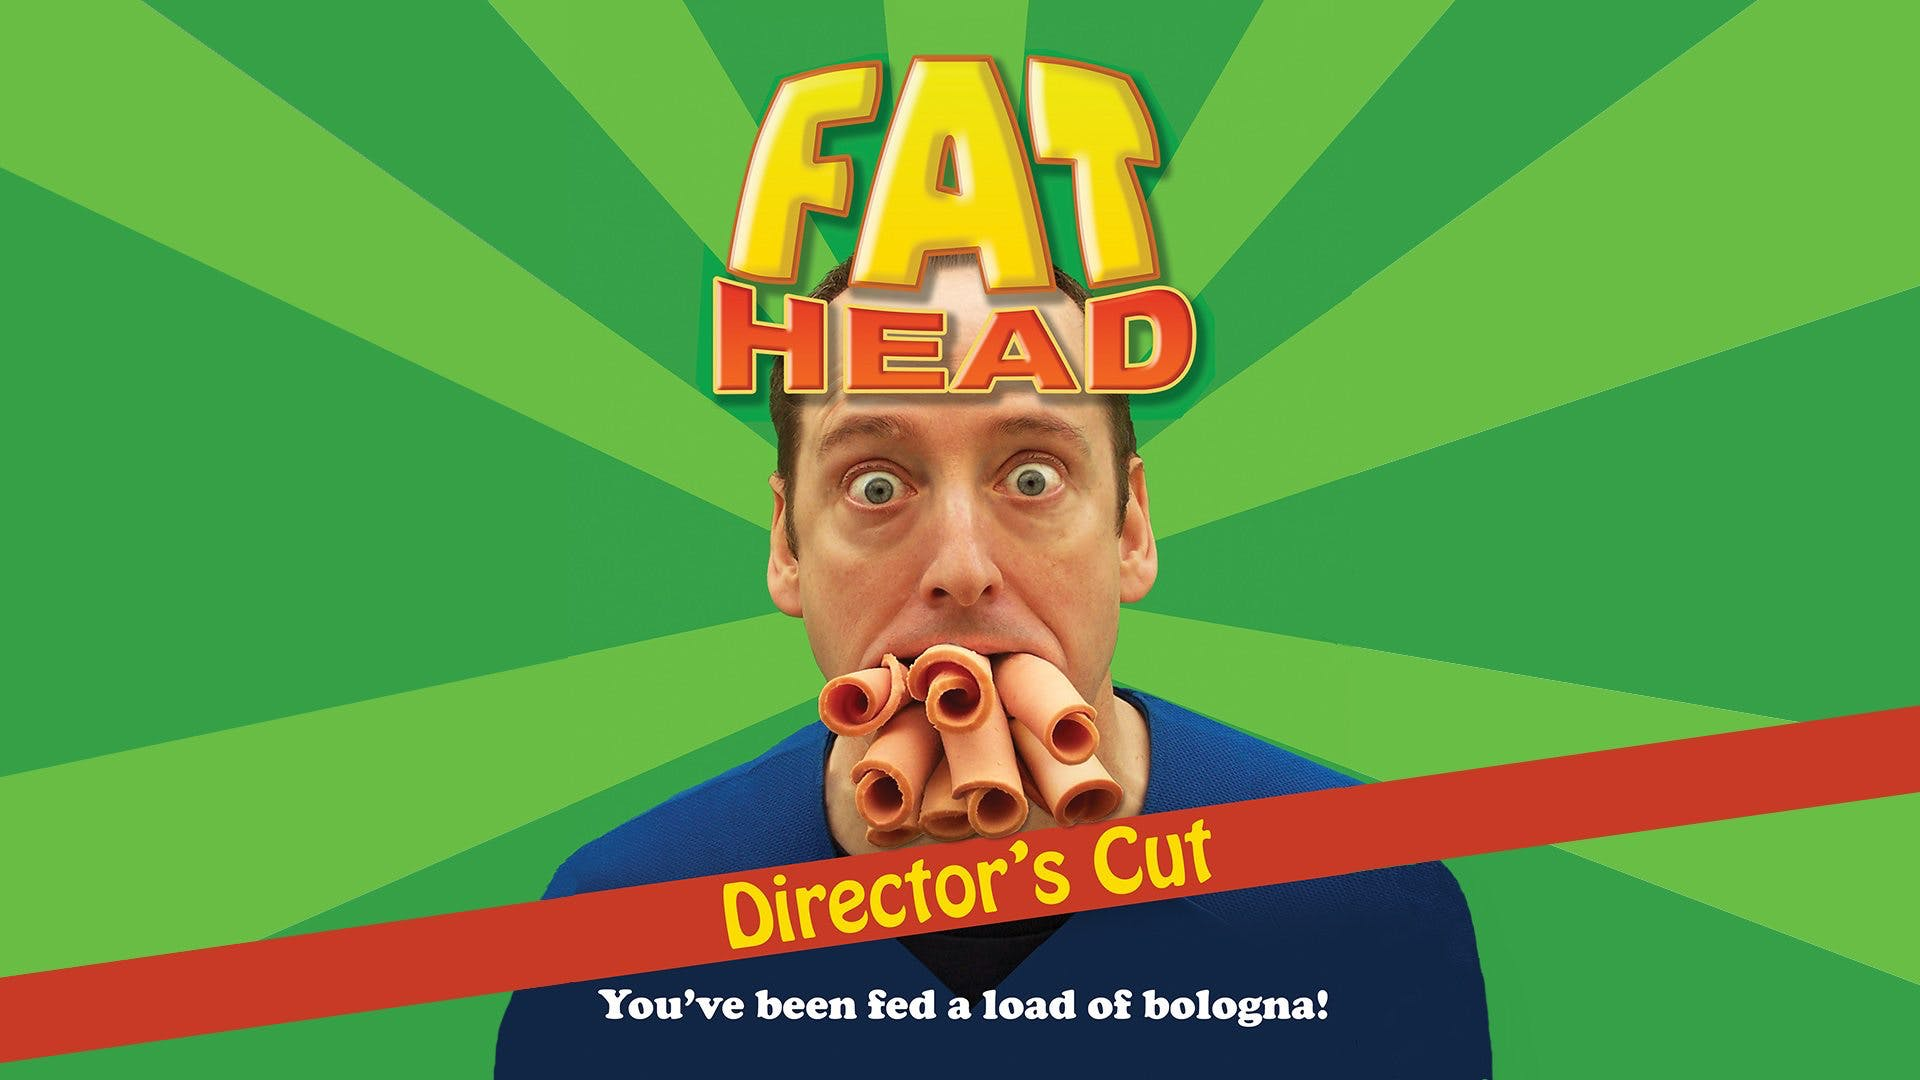 A classic low-carb movie: Fat Head